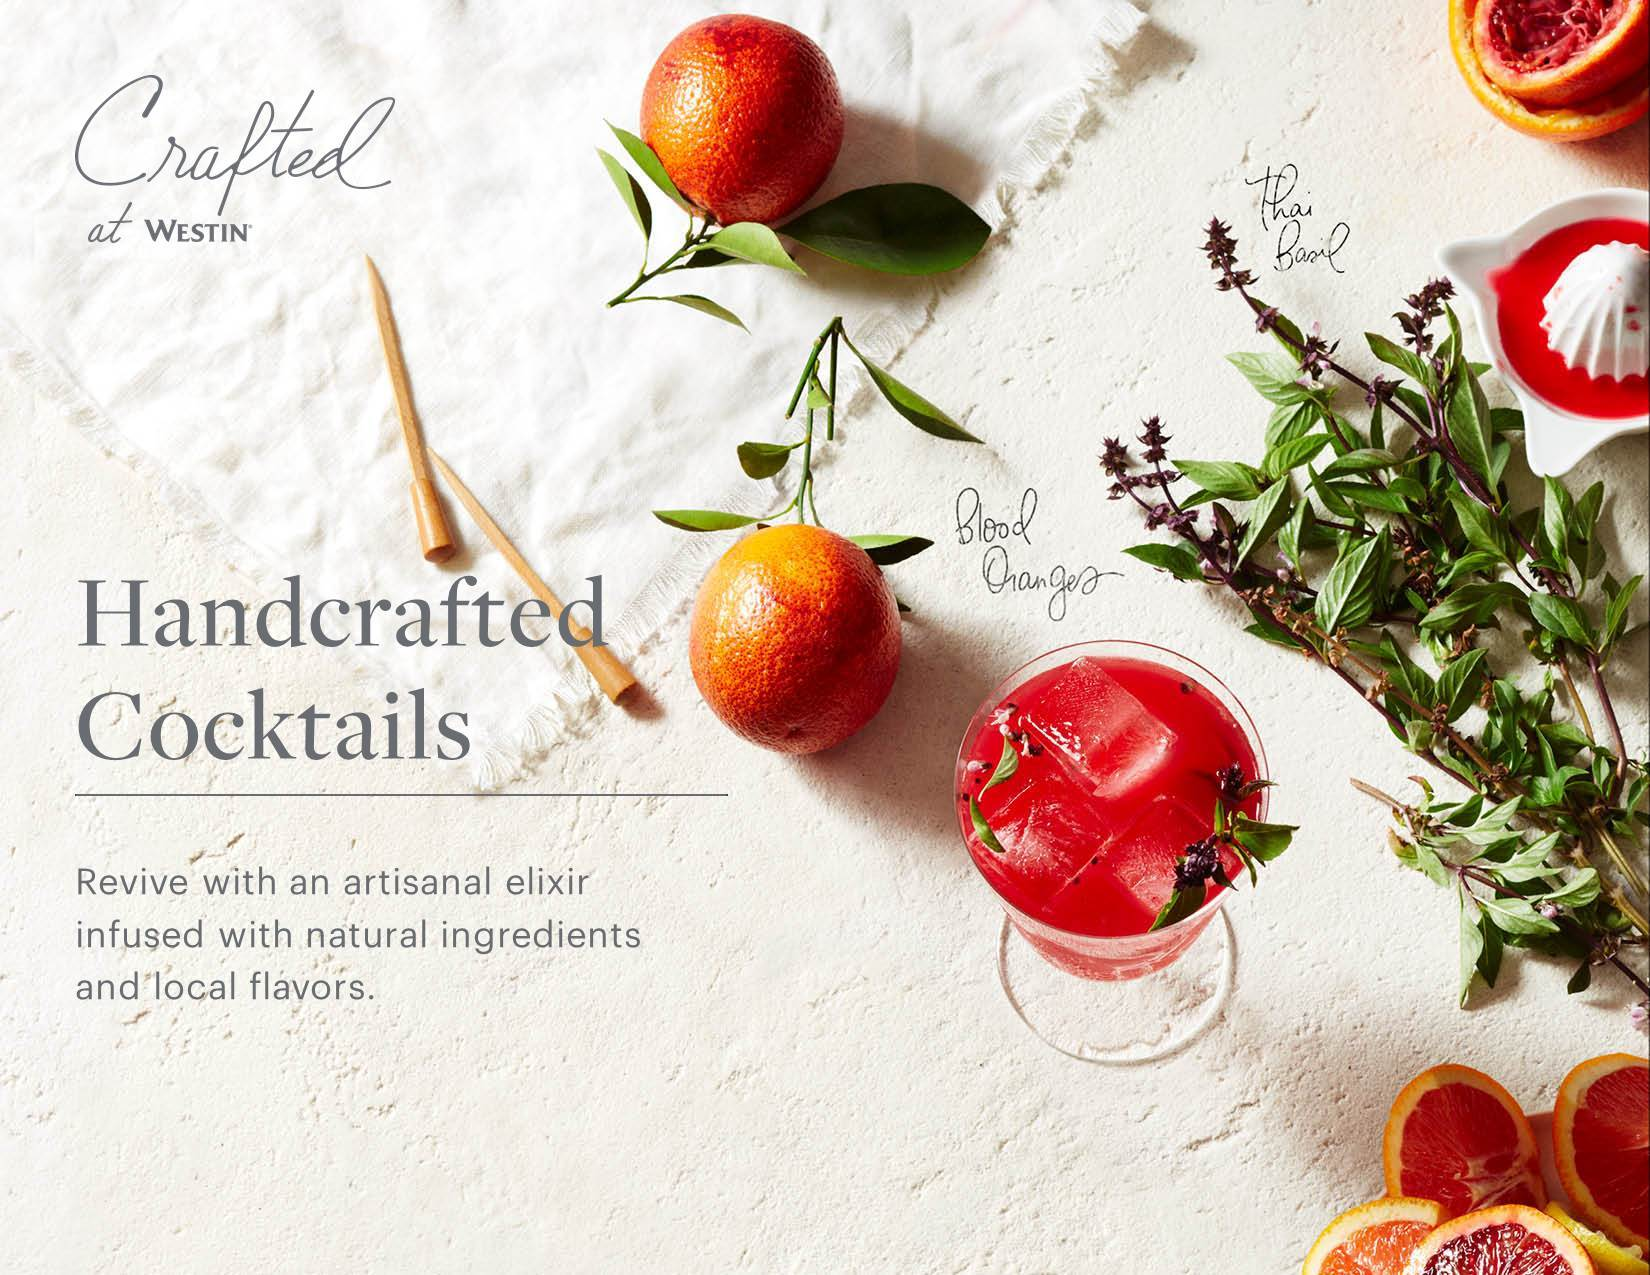 Handcrafted cocktails? Yes, they exist!